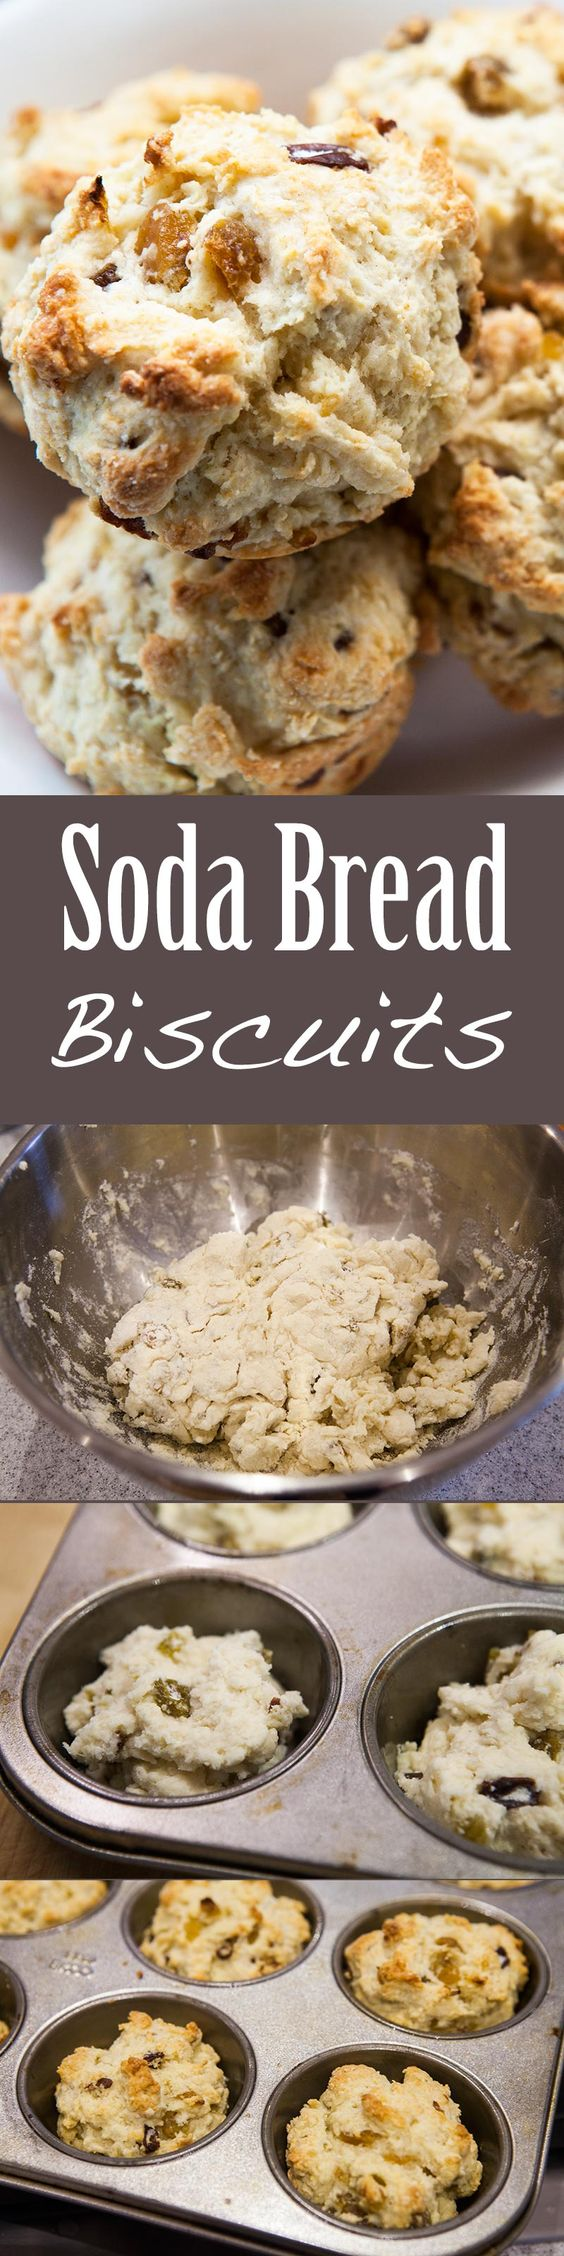 Soda Bread Biscuits! Like mini Irish soda breads, these biscuits are ...